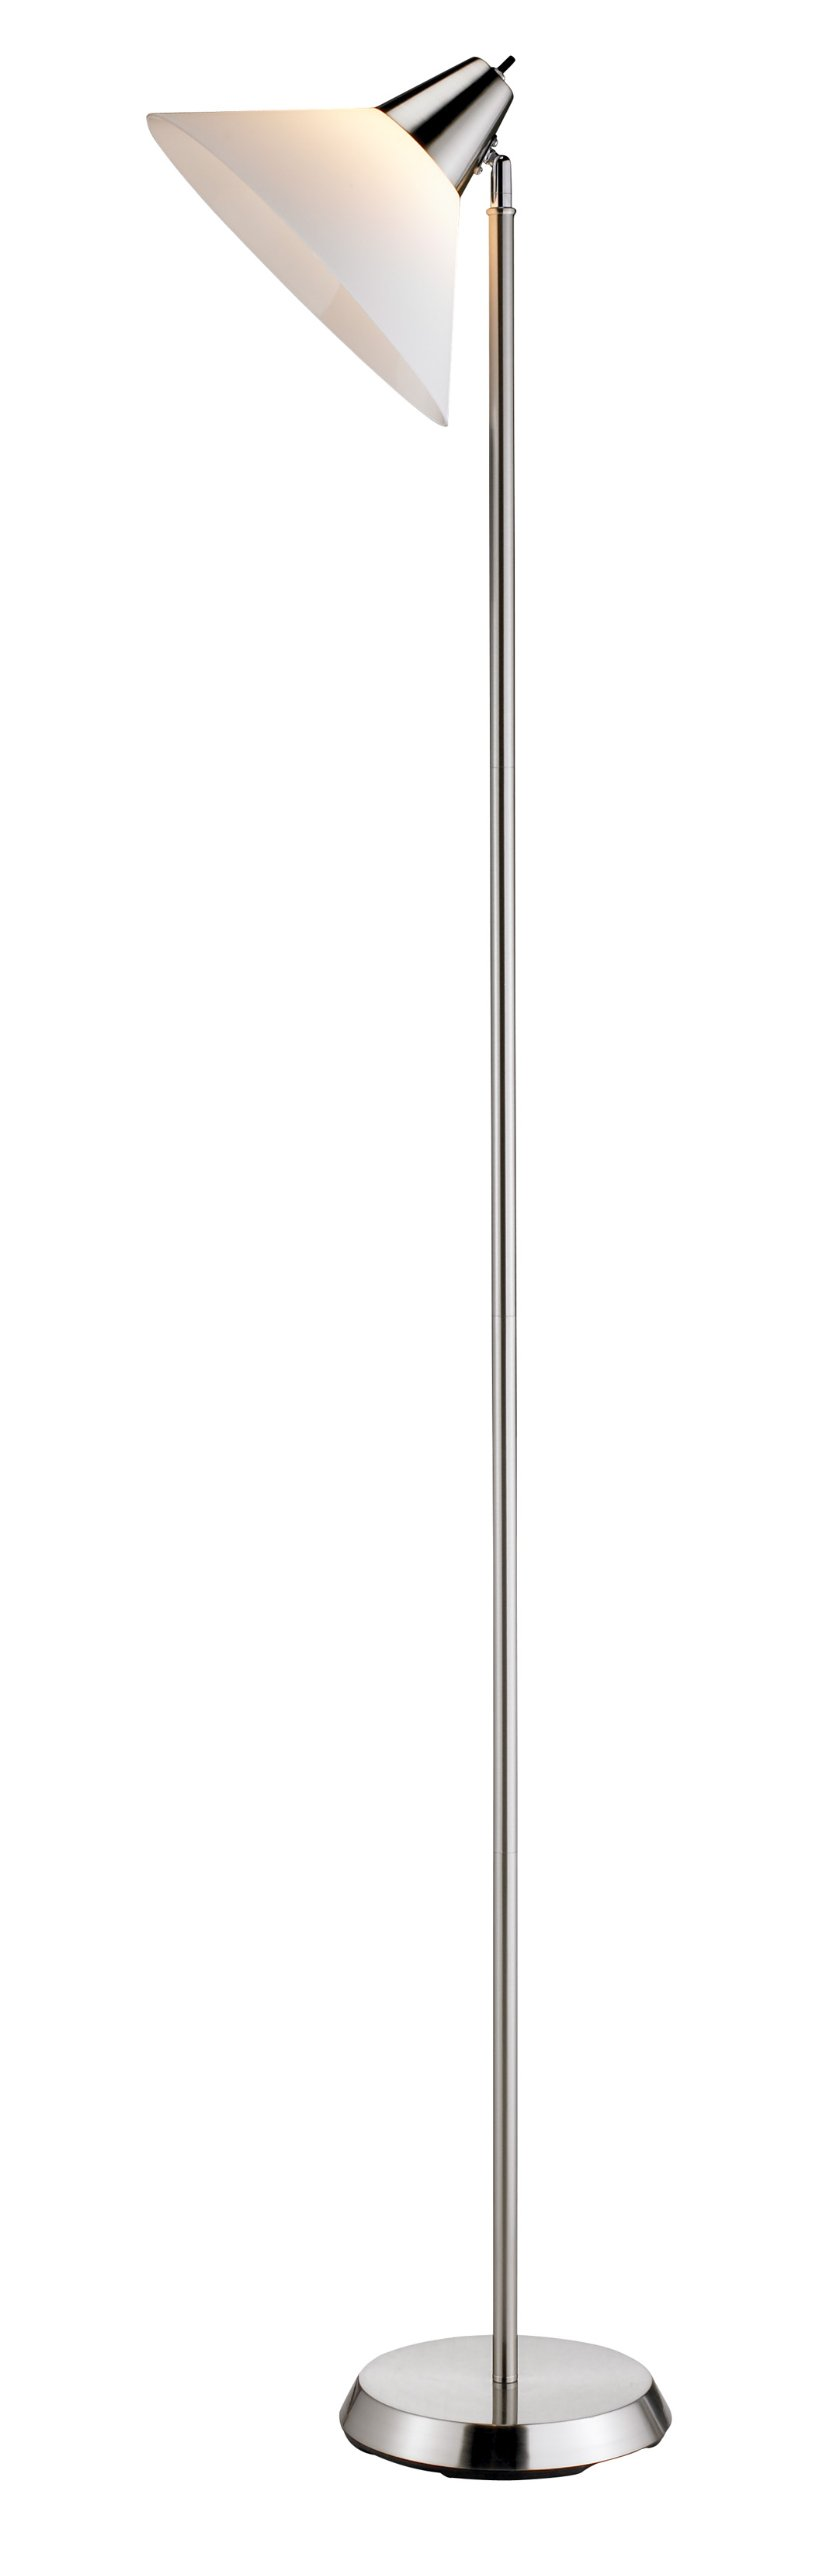 Adesso Swivel Floor Lamp – White Plastic Shade, Smart Outlet Compatible 1 Bulb Lighting Equipment. Home Decor Accessory